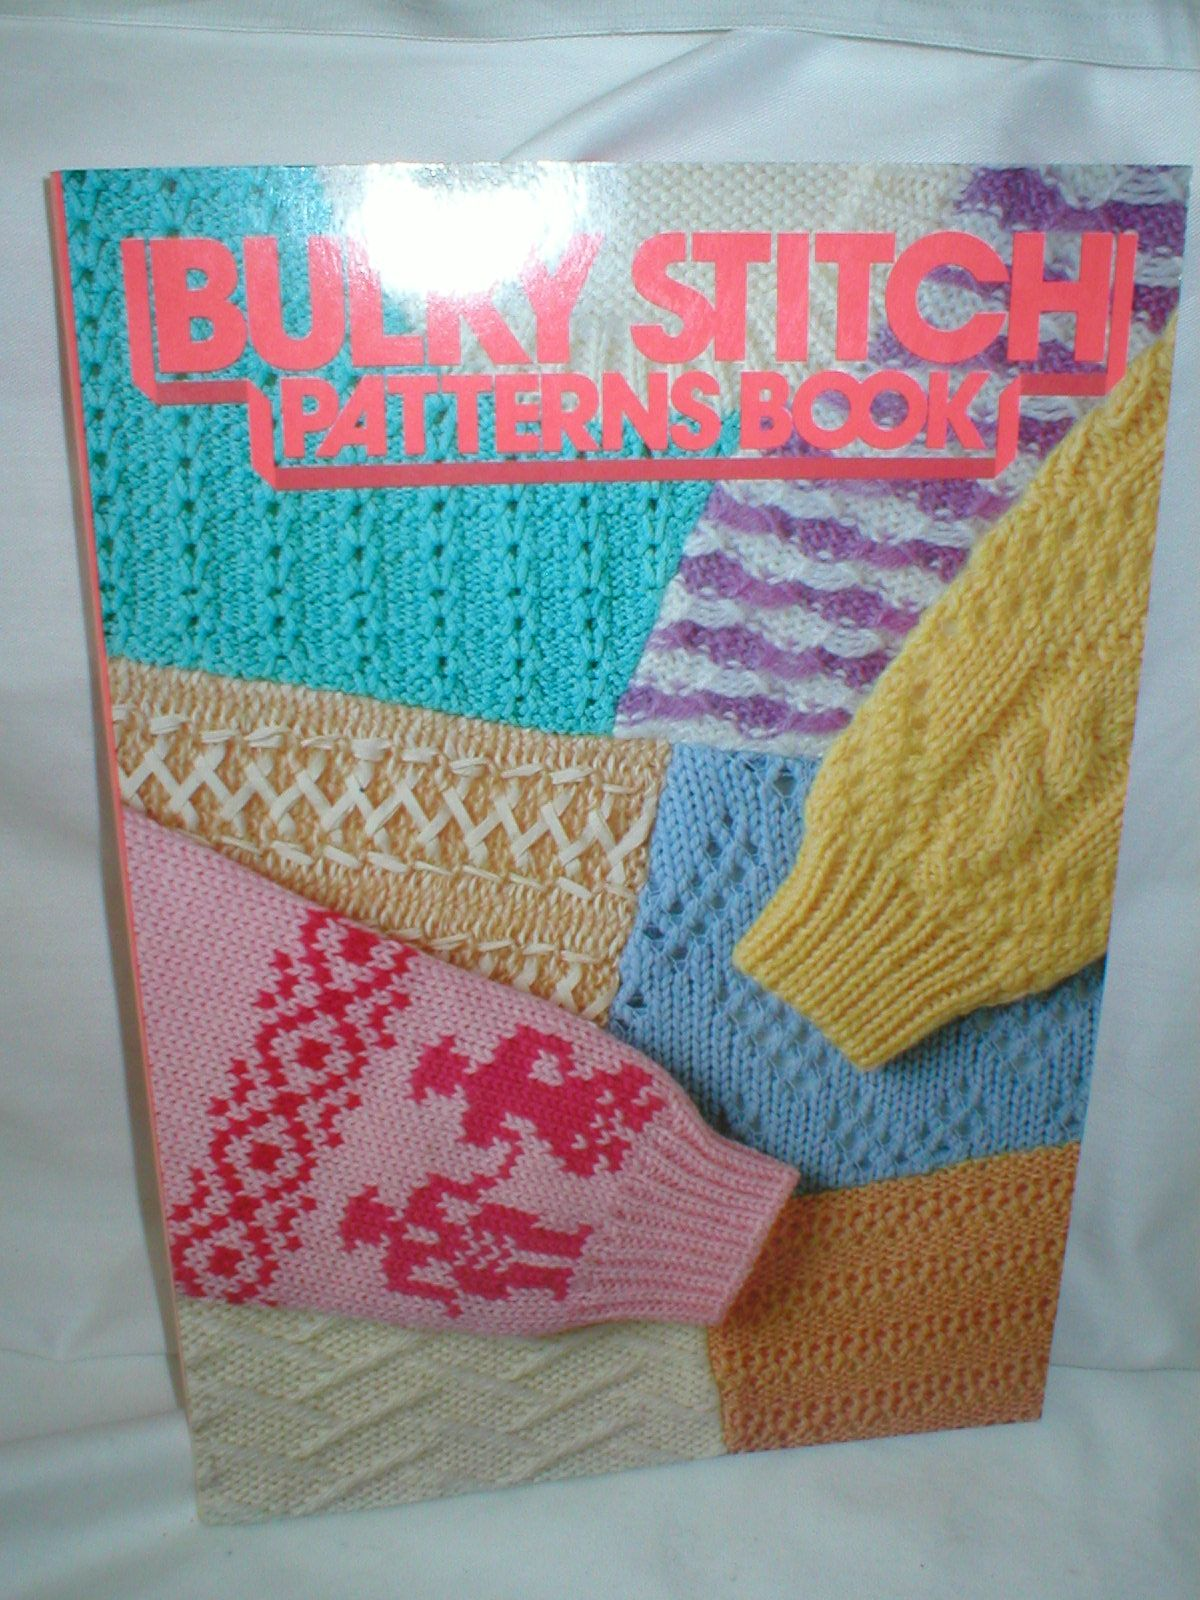 singer knitting machine patterns